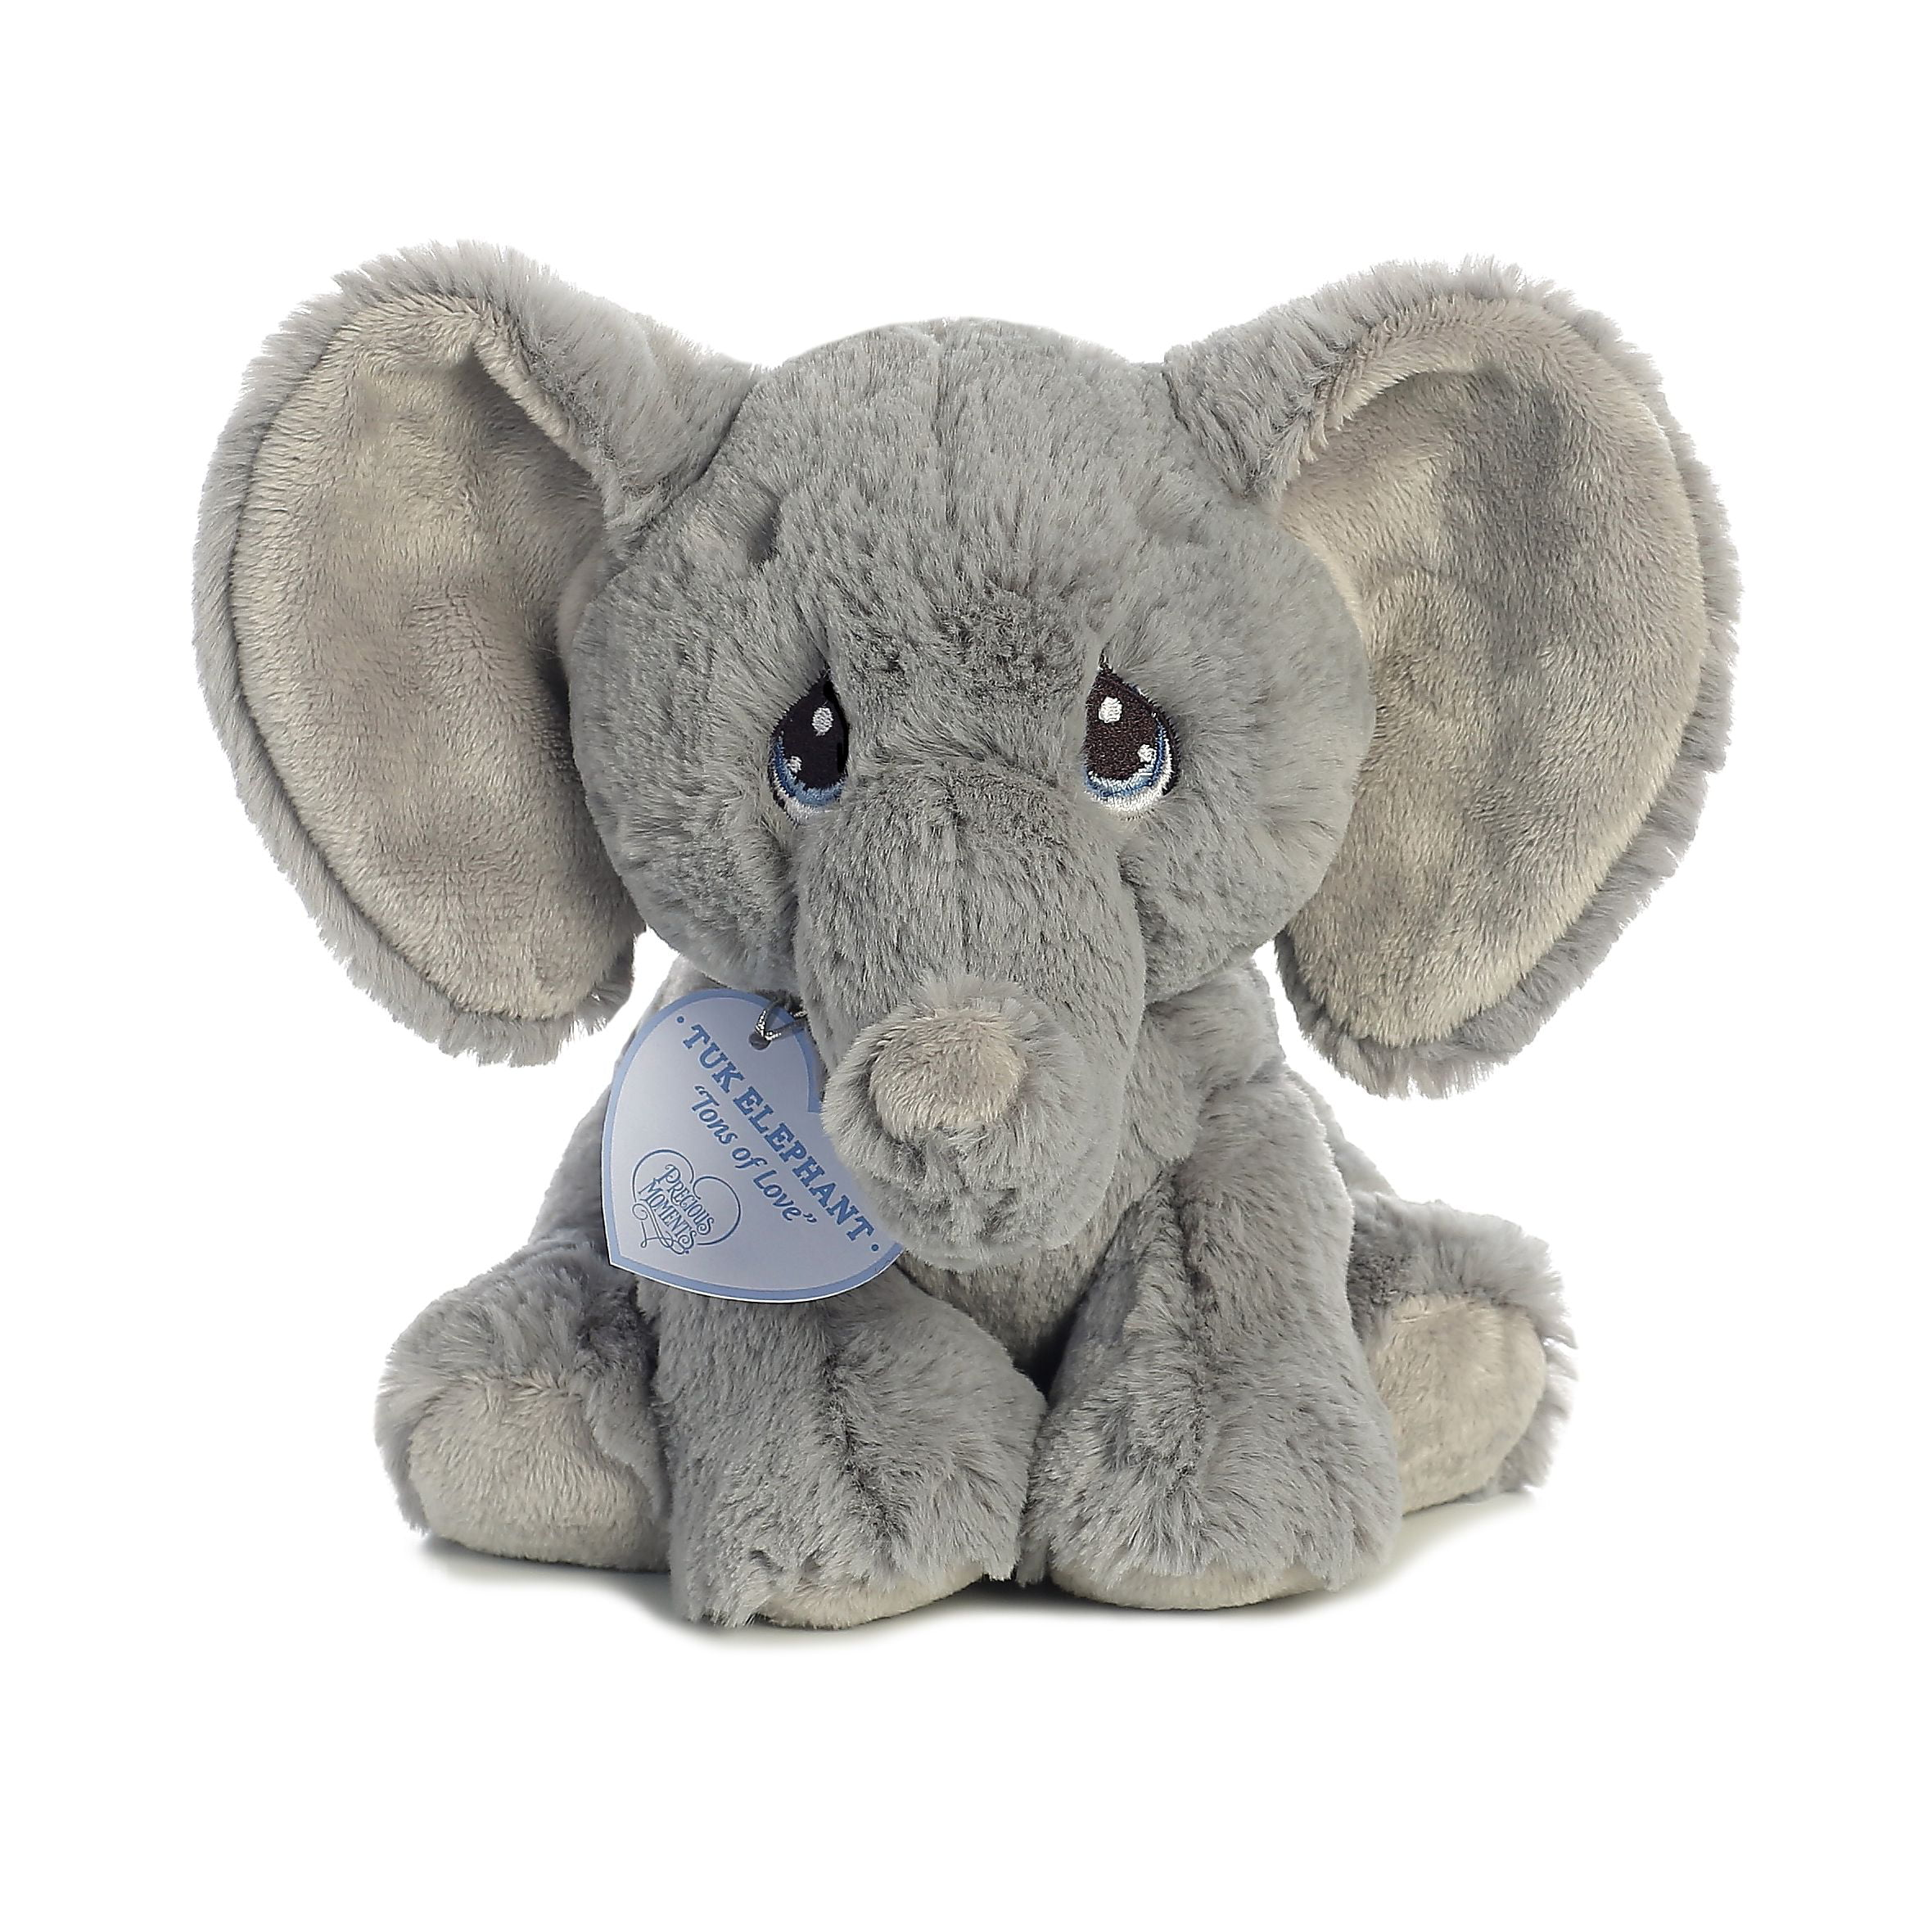 Tuk Elephant 8 inch Baby Stuffed Animal by Precious Moments (15704) by Precious Moments